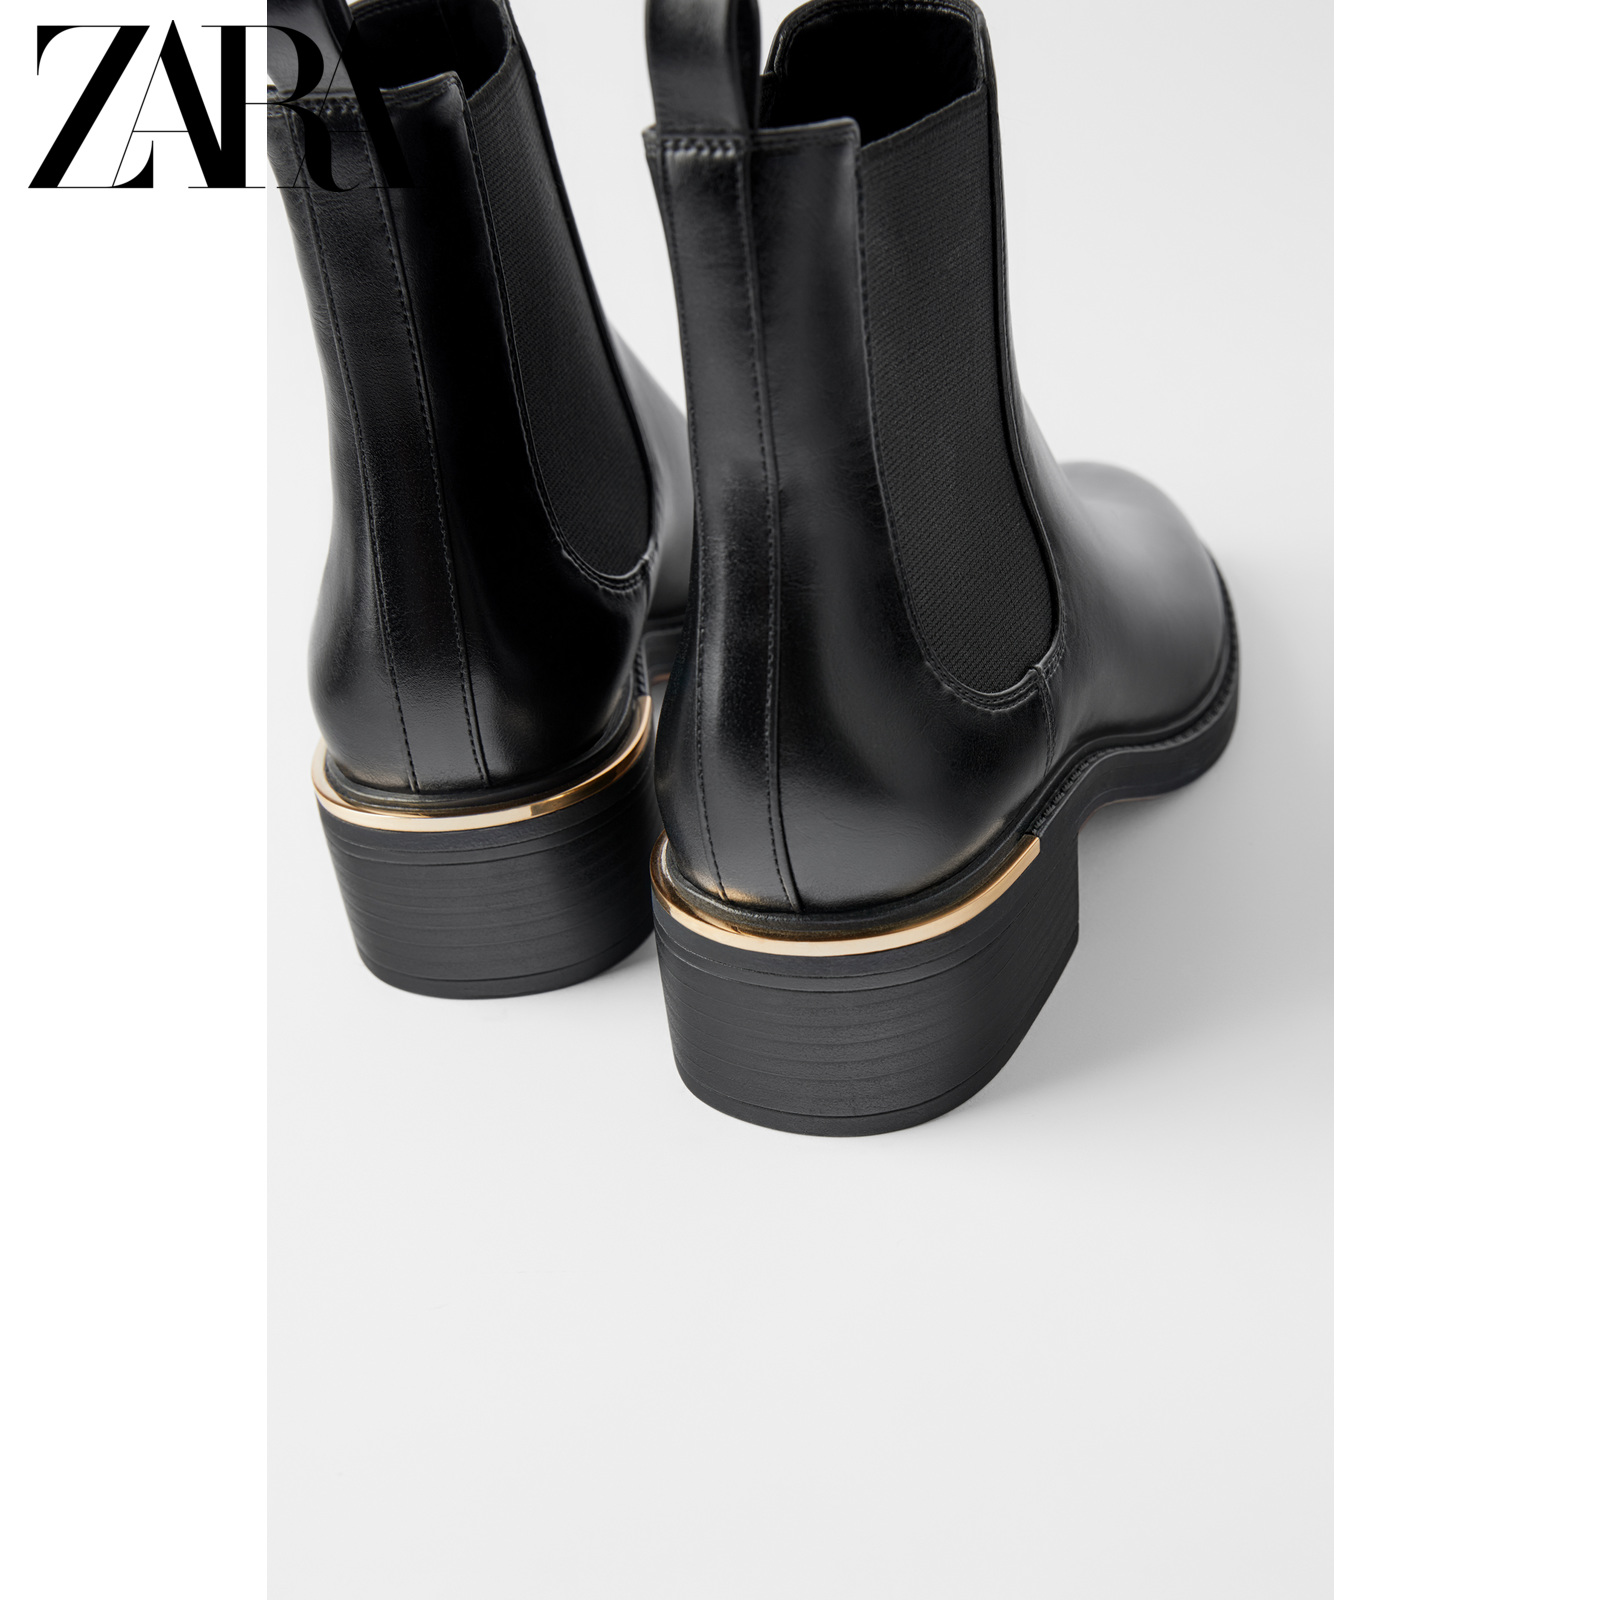 Zara new women's shoes black flat retro smoke tube boots Chelsea boots 16152001040